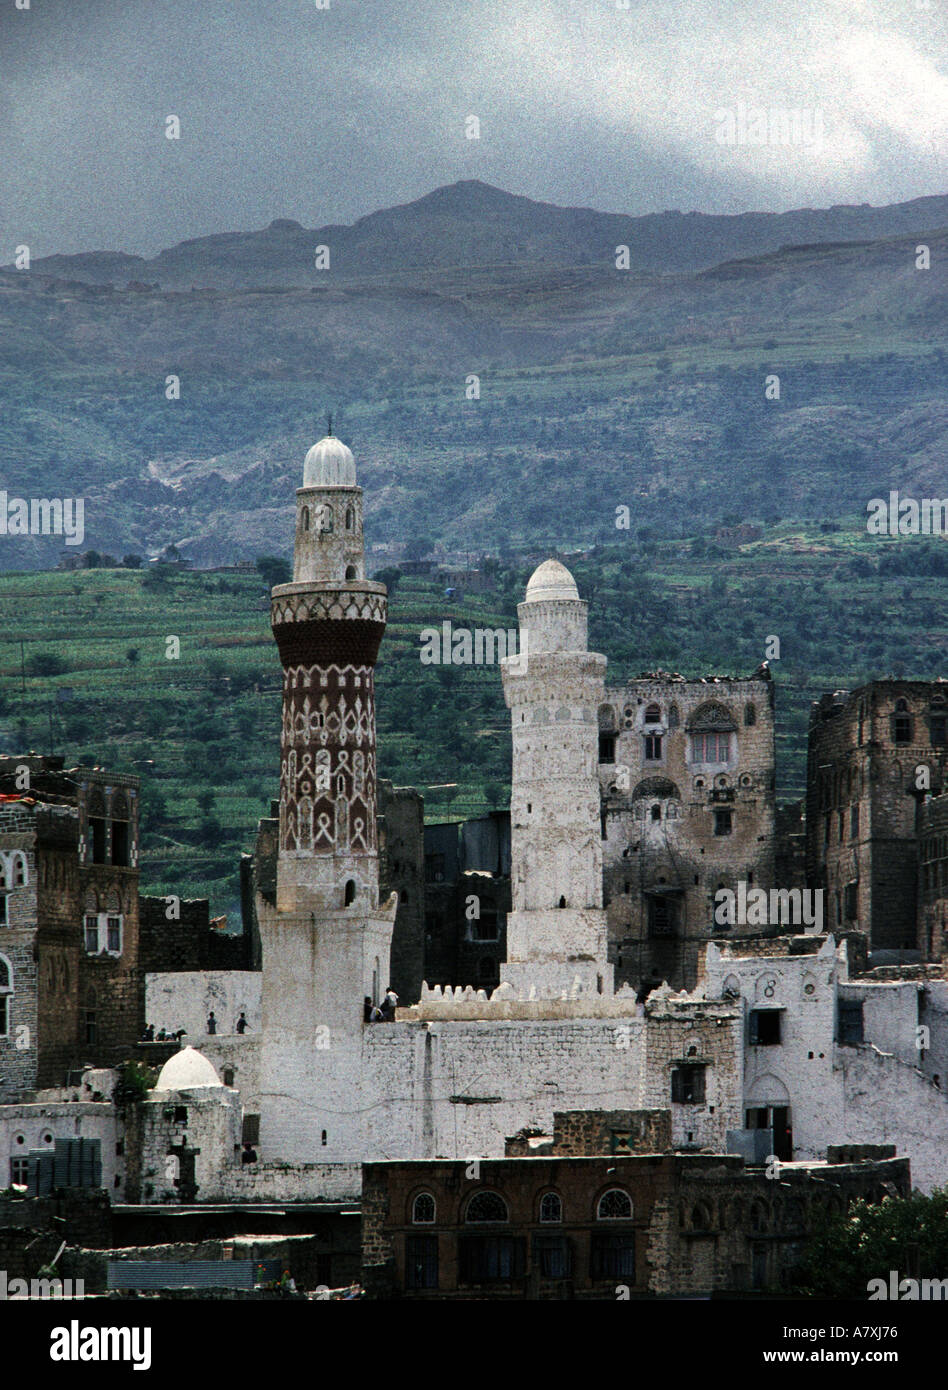 Queen Arwa Mosque in Jibla - Stock Image